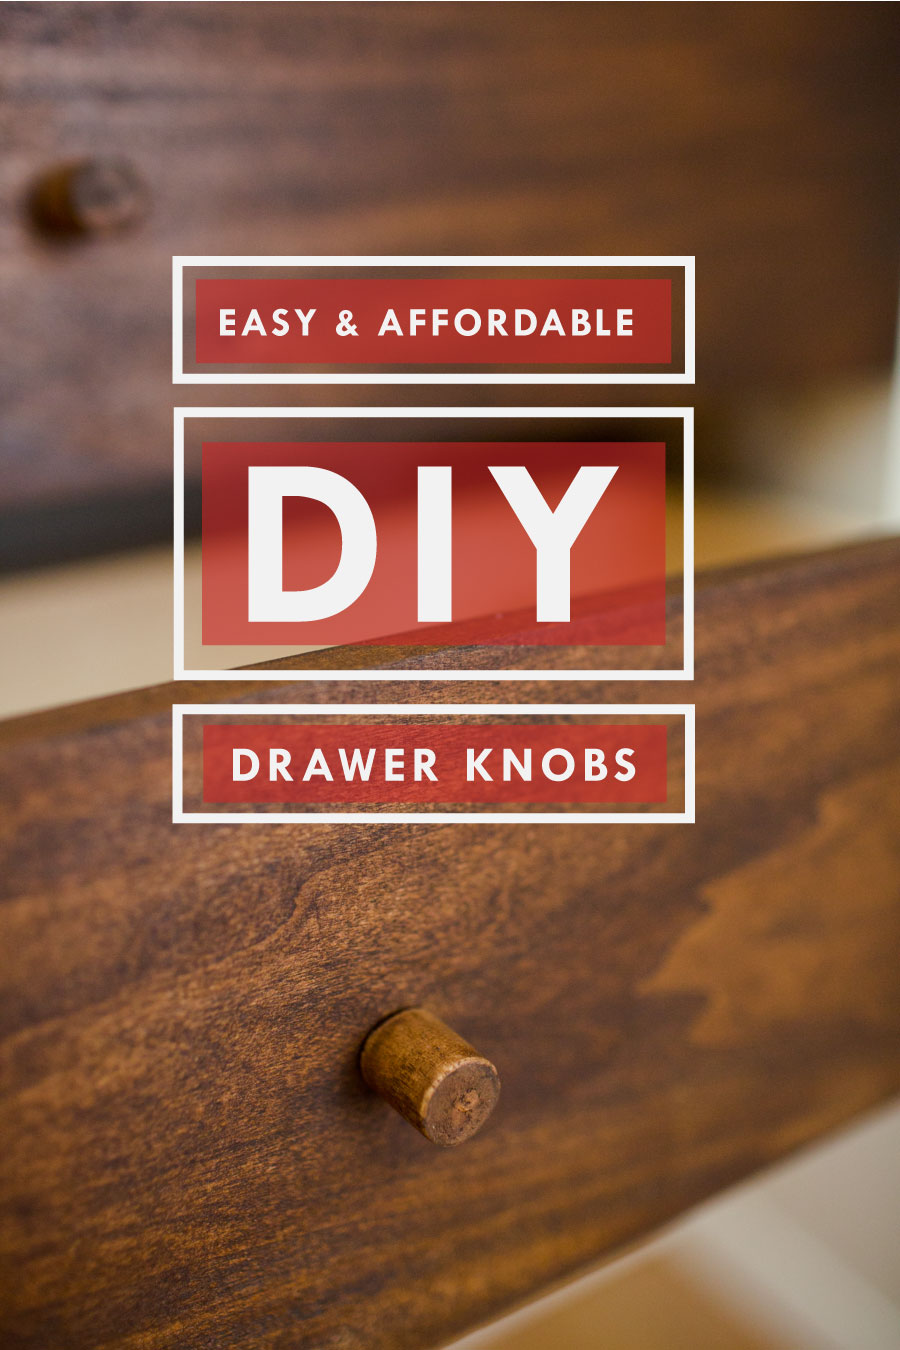 Easy and Affordable DIY drawer knobs